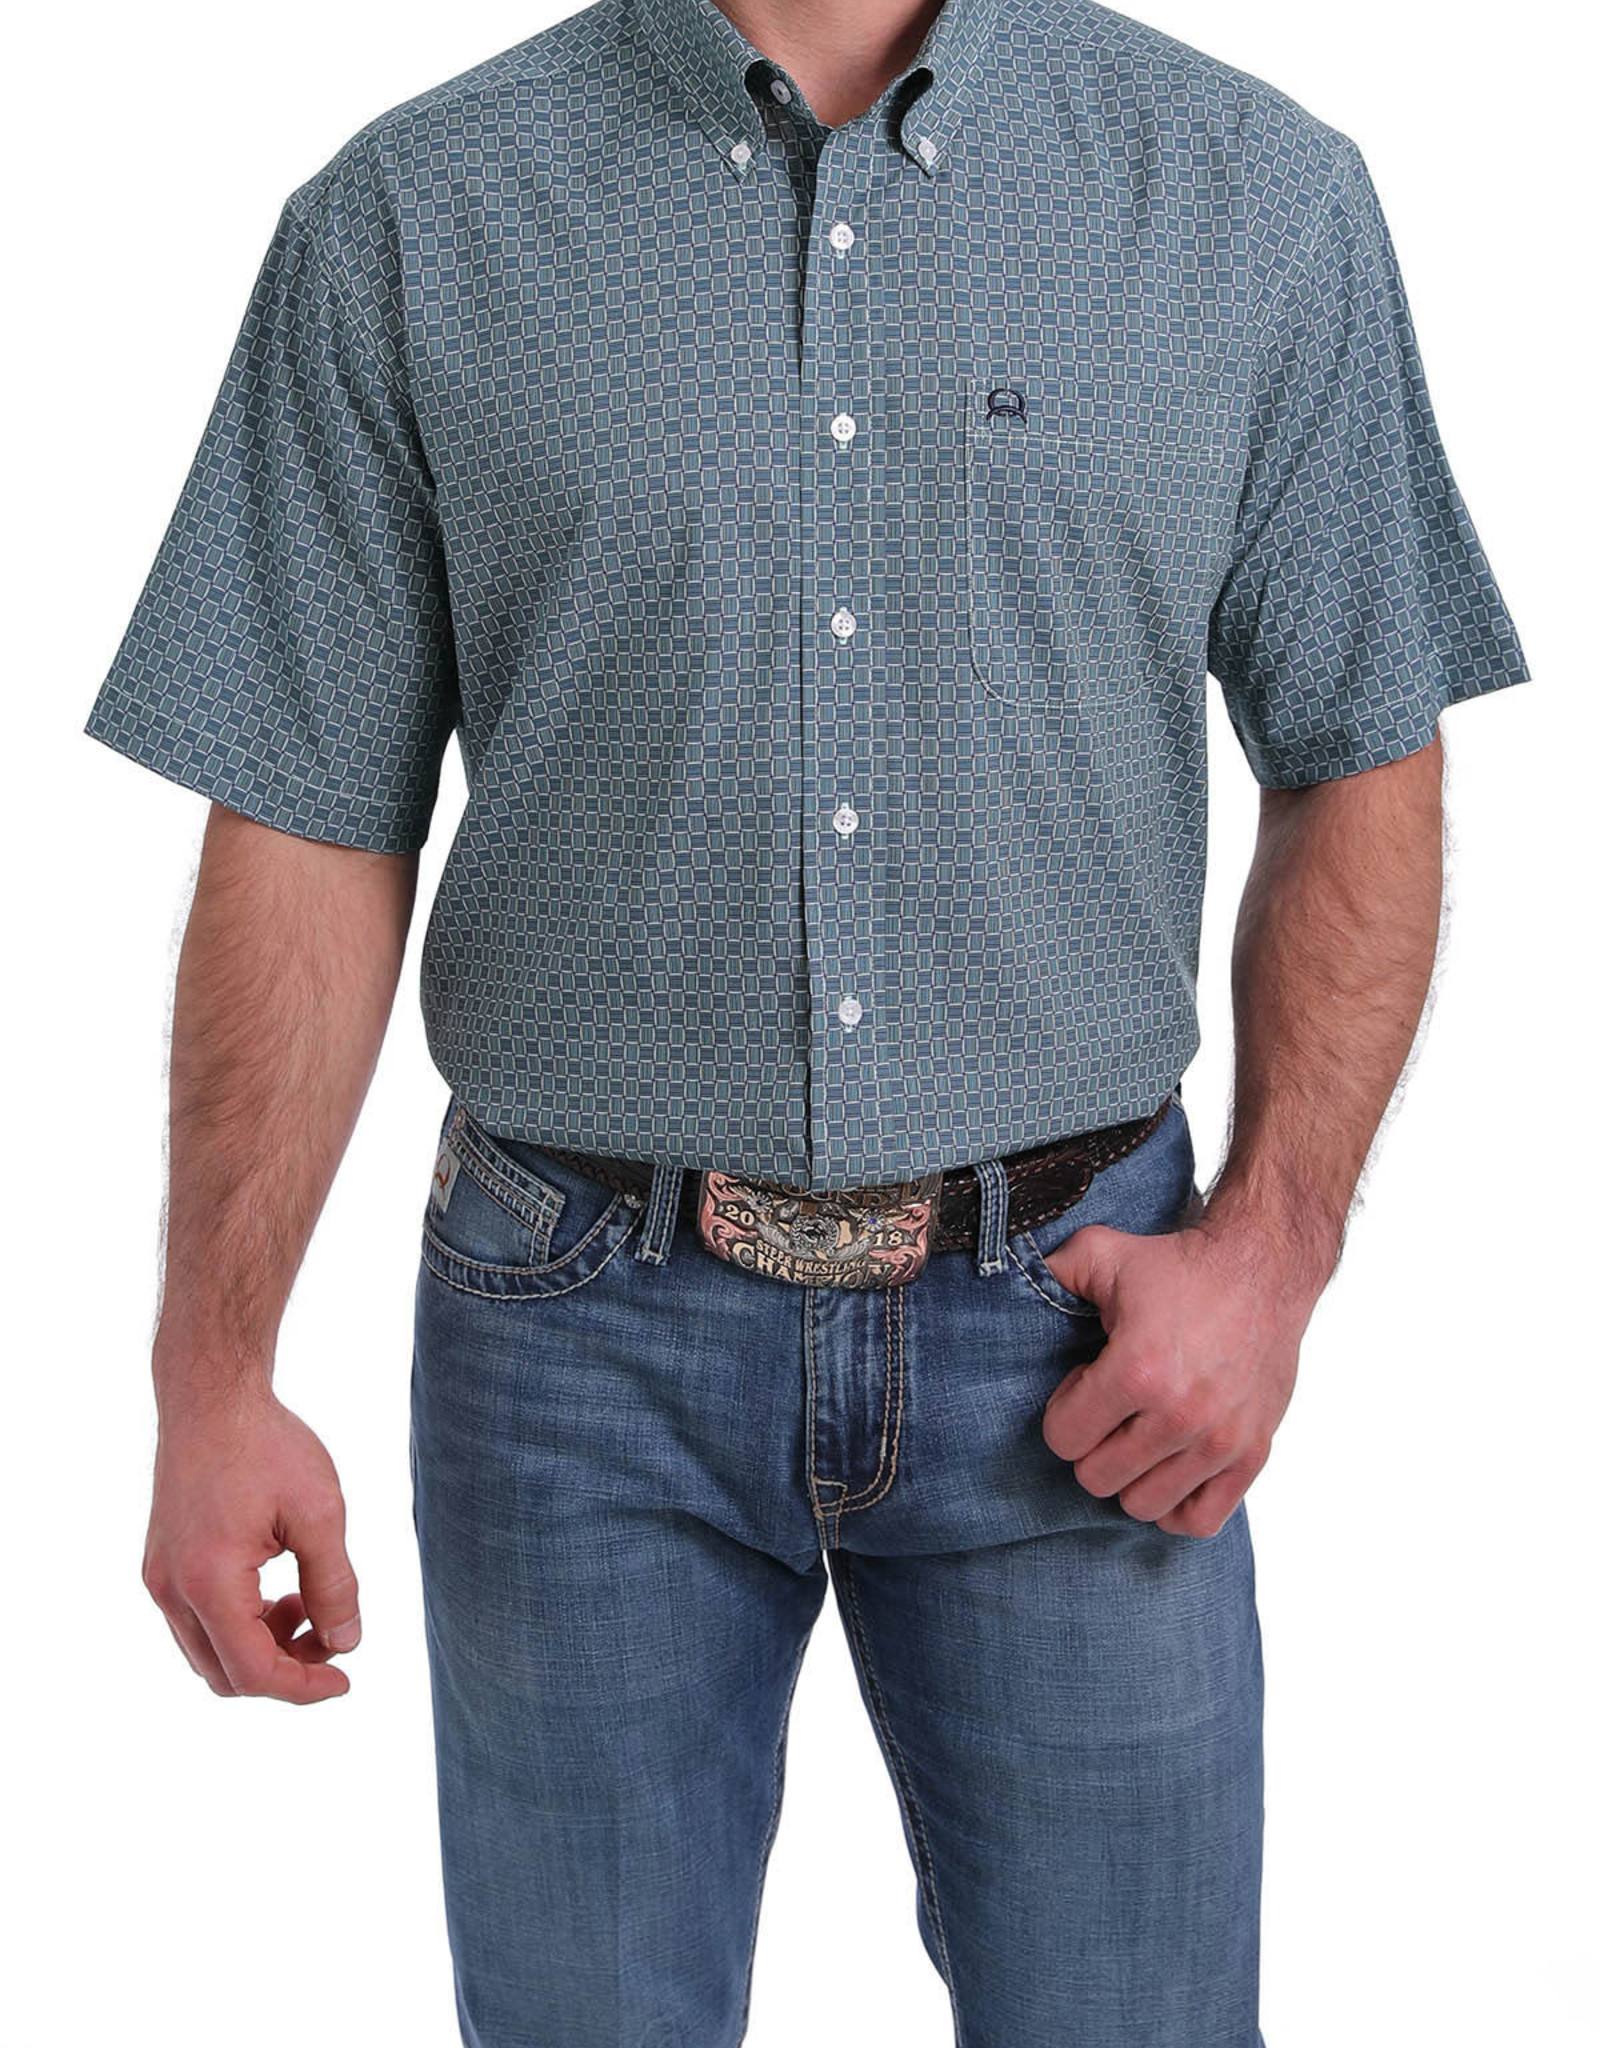 Cinch Cinch Men's Light Blue Short Sleeve Shirt